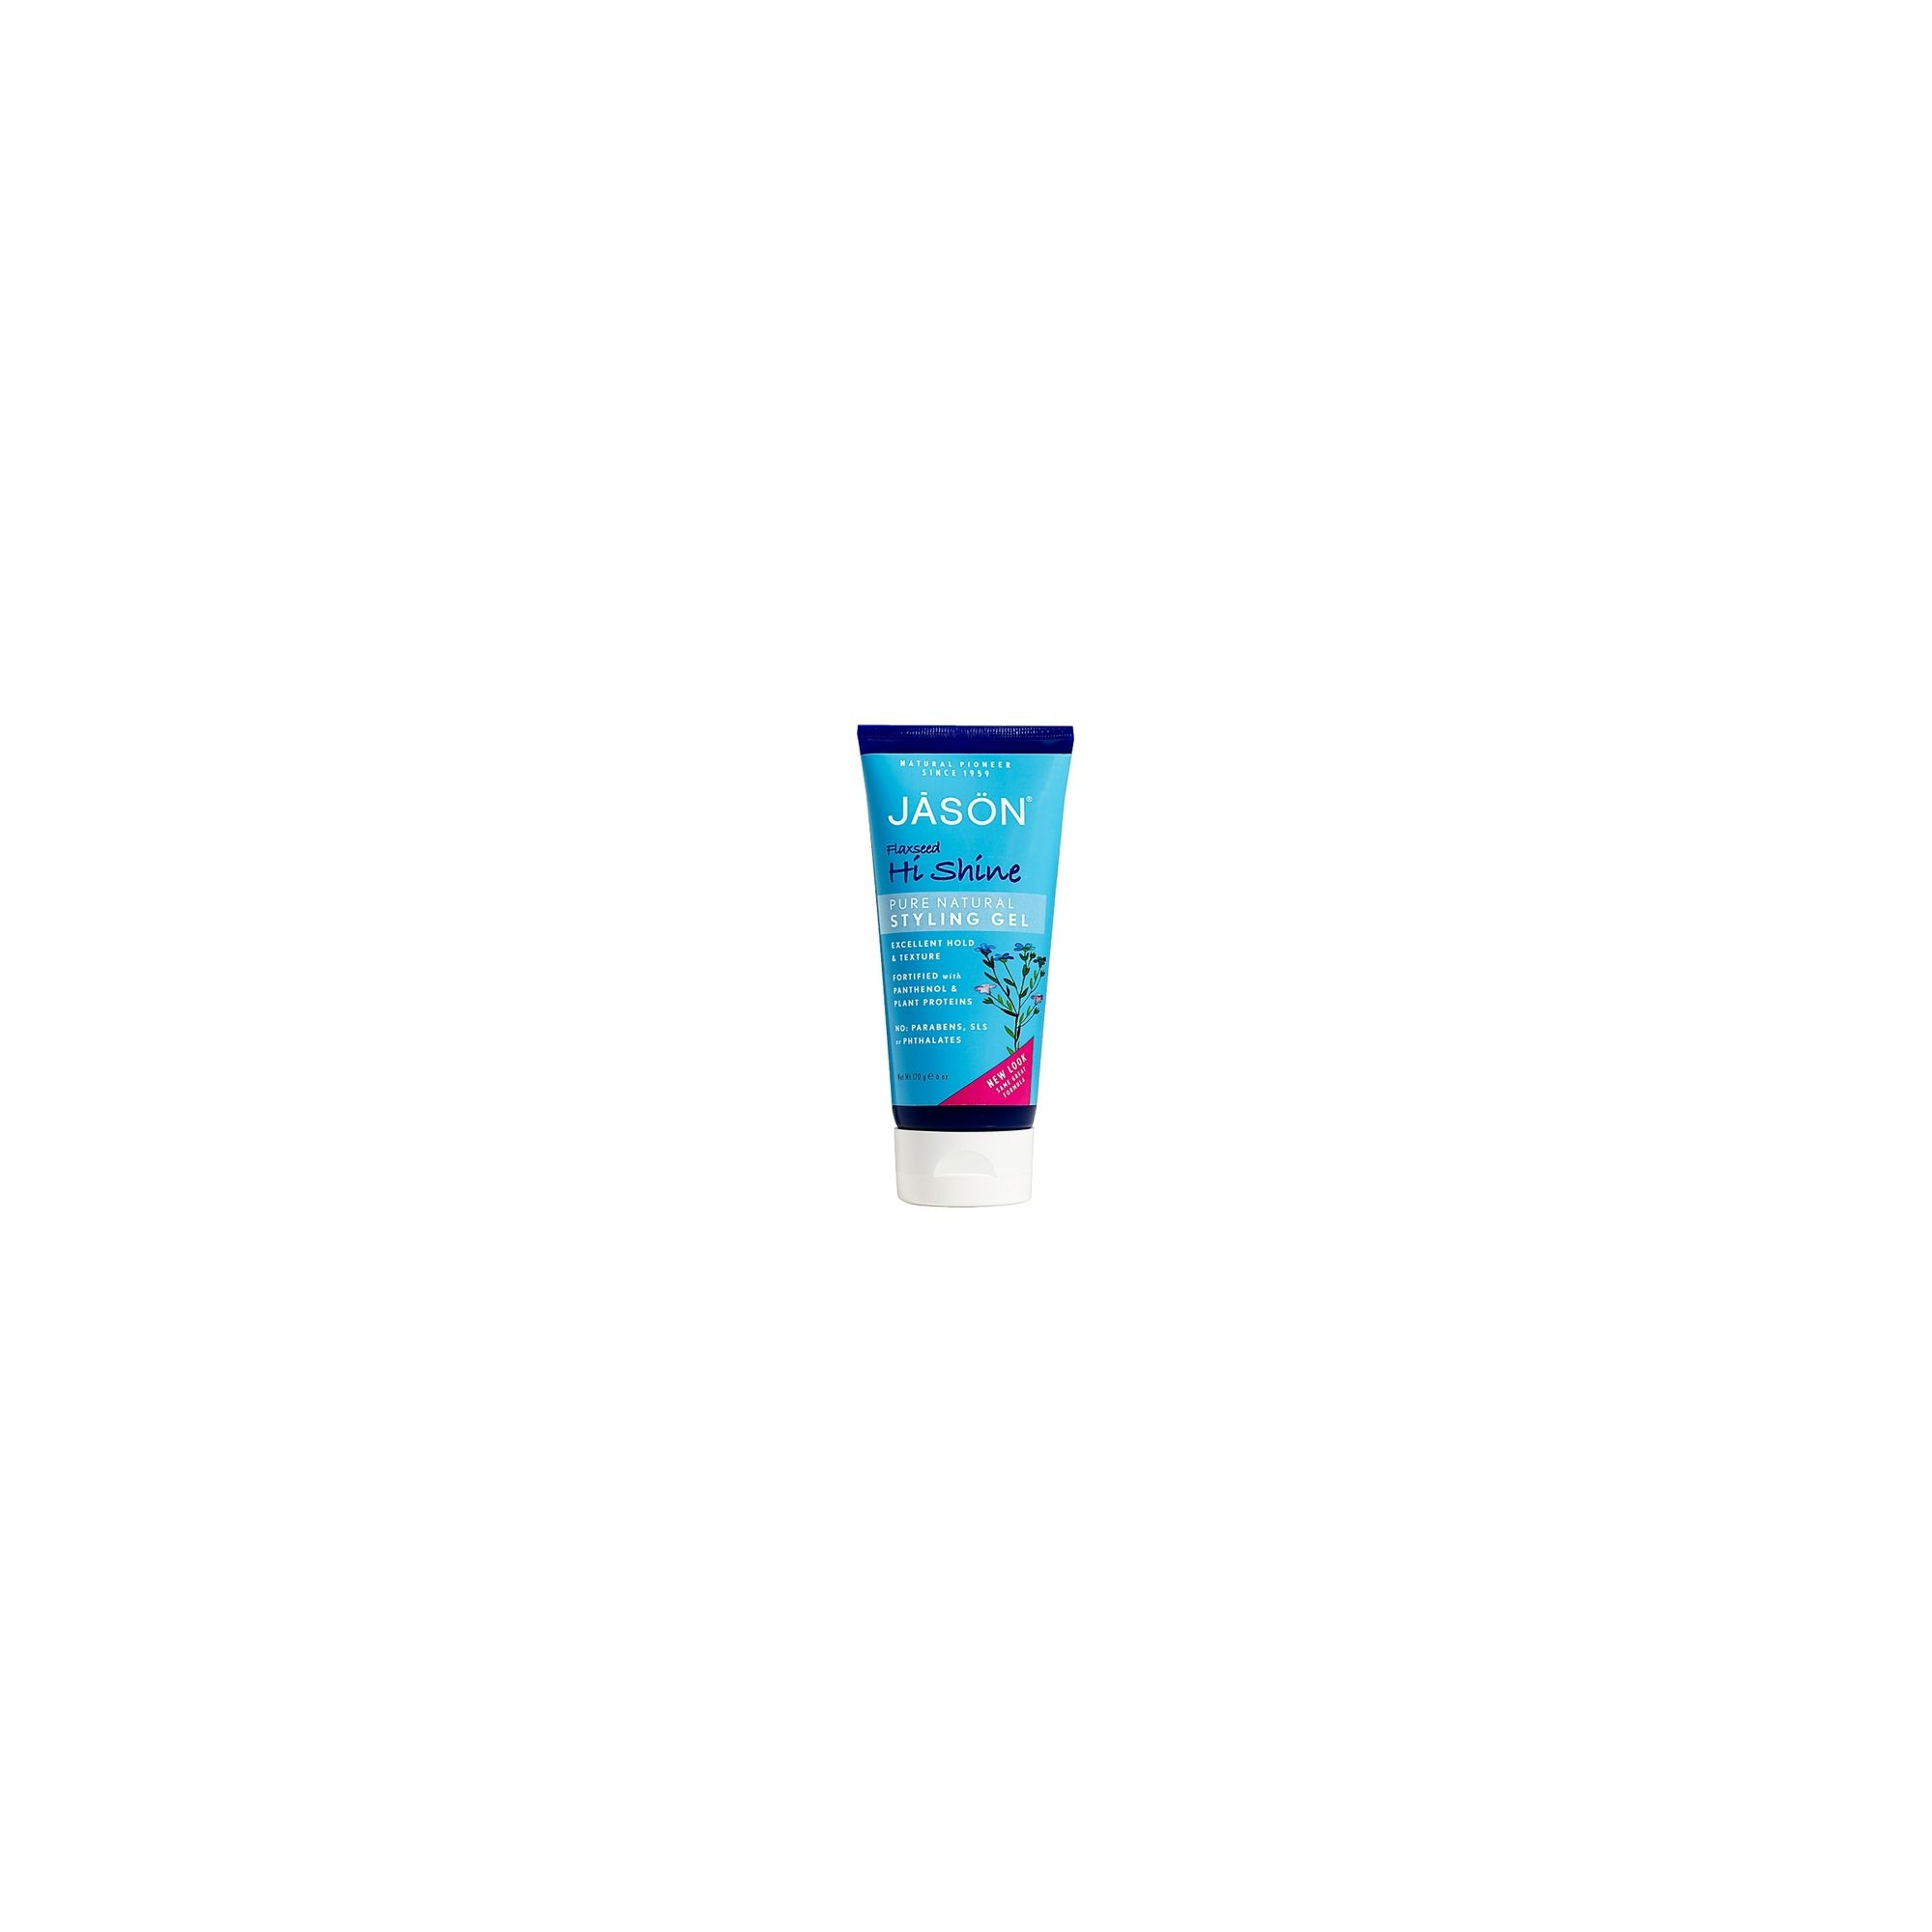 Hi-Shine Styling Gel